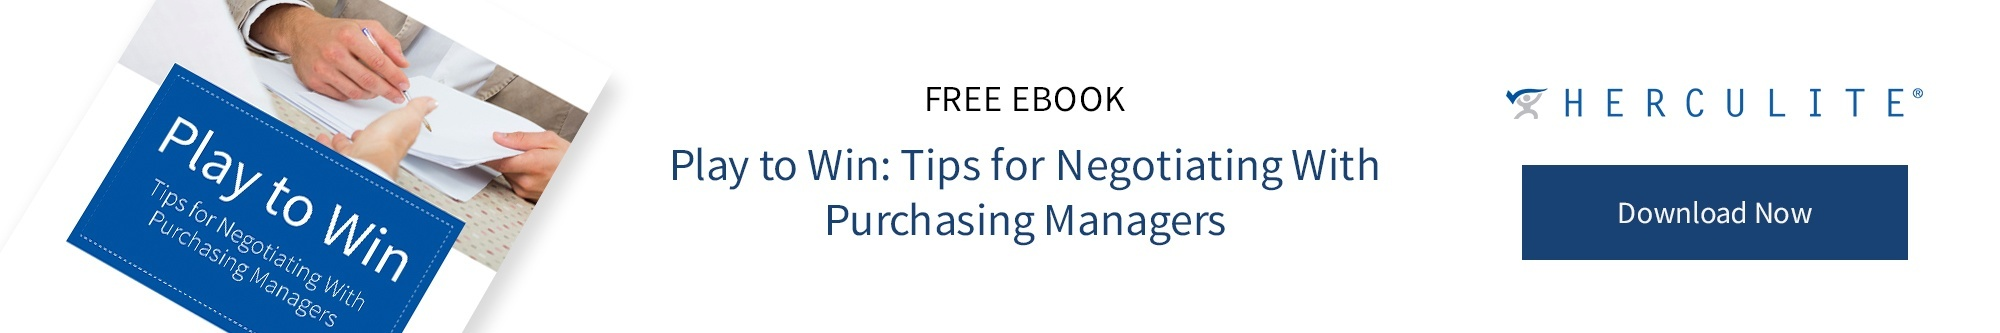 Play to Win: Tips for Negotiating With Purchasing Managers eBook